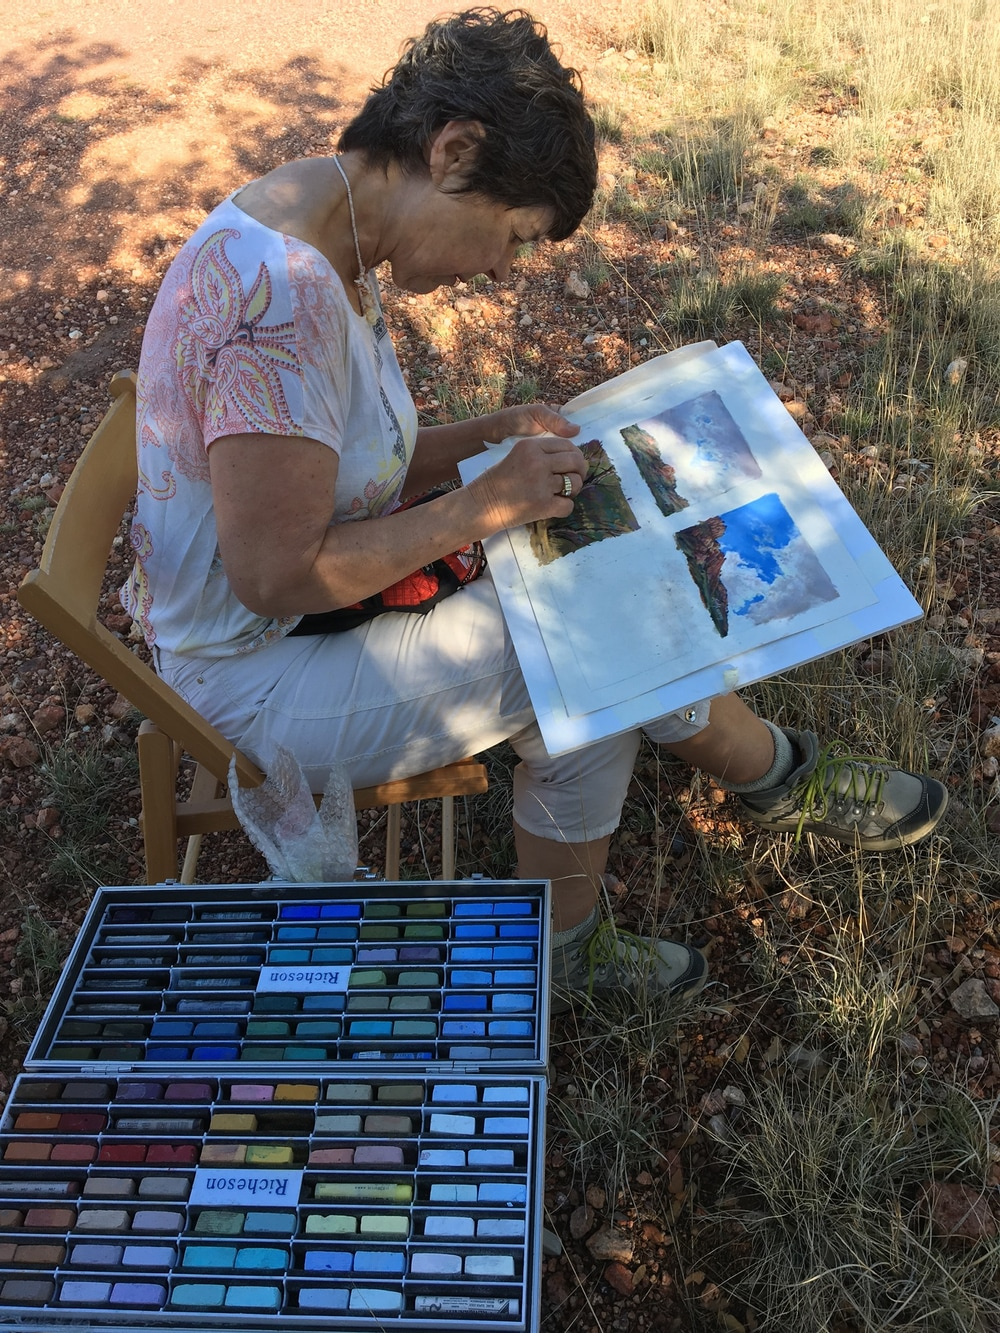 artist painting outdoors with miniatures in her lap